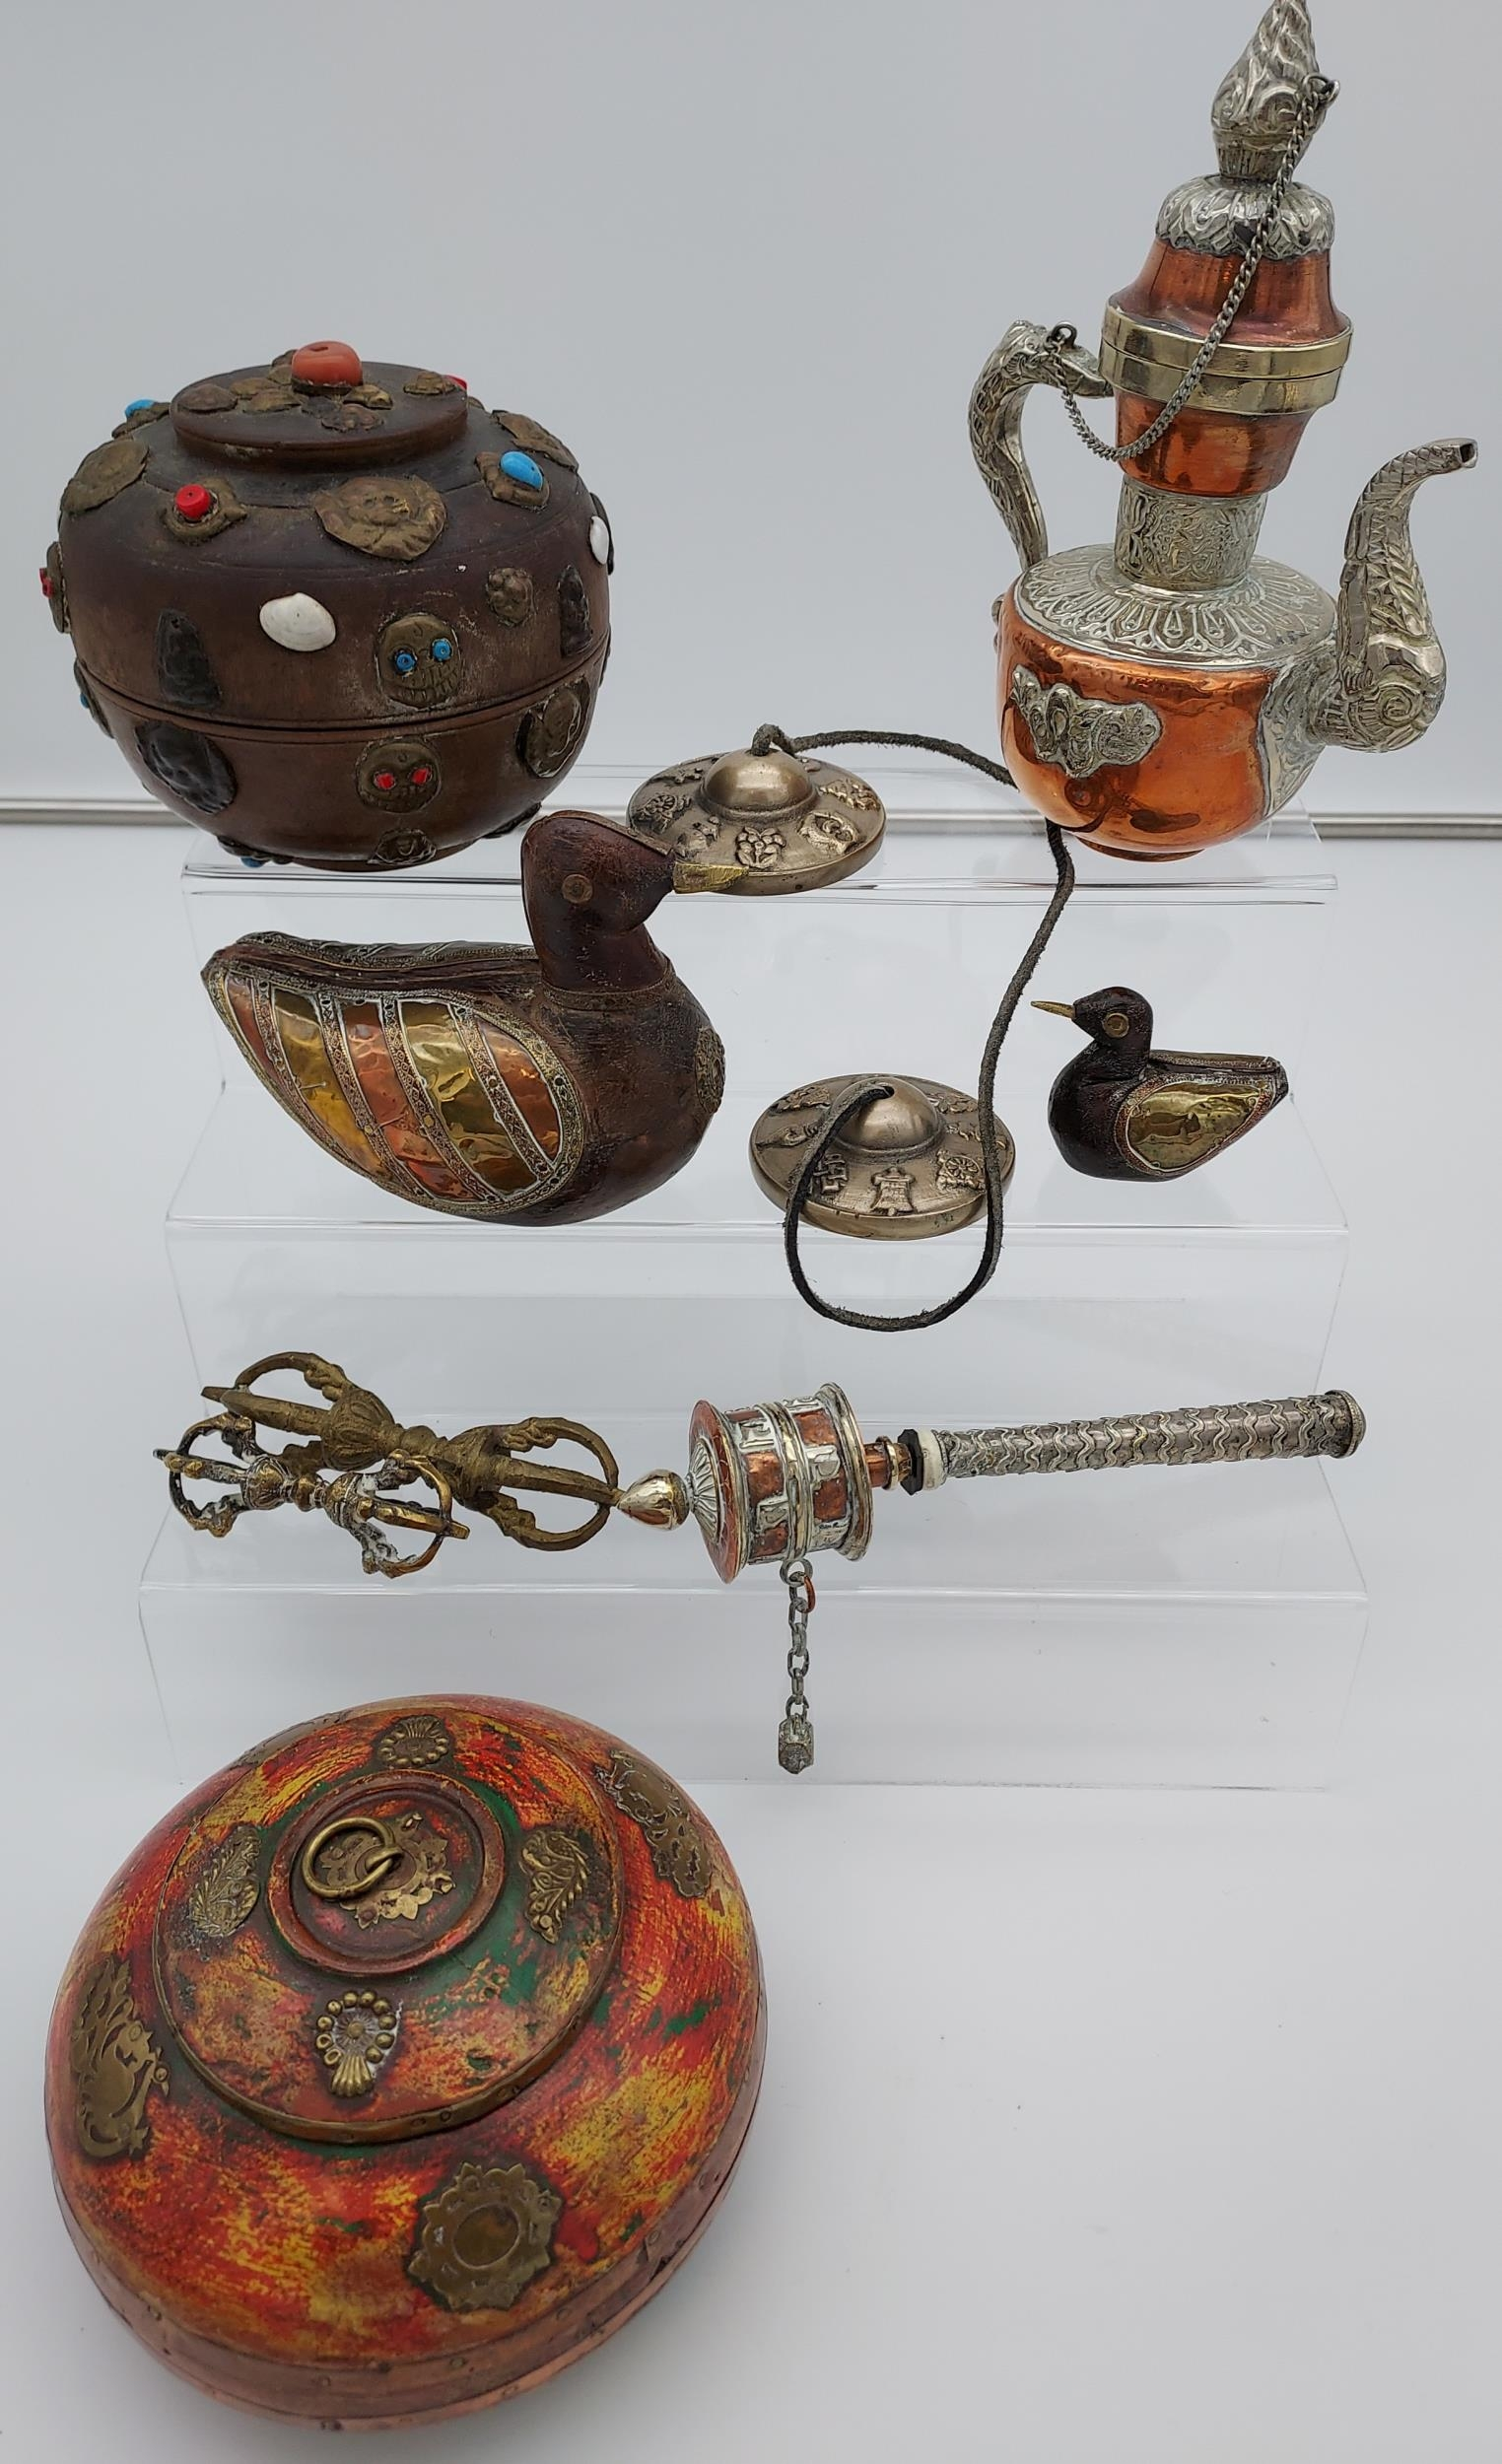 A collection of Tibetan antiques to include silver and copper teapot, prayer wheel, meditation chime - Image 6 of 6